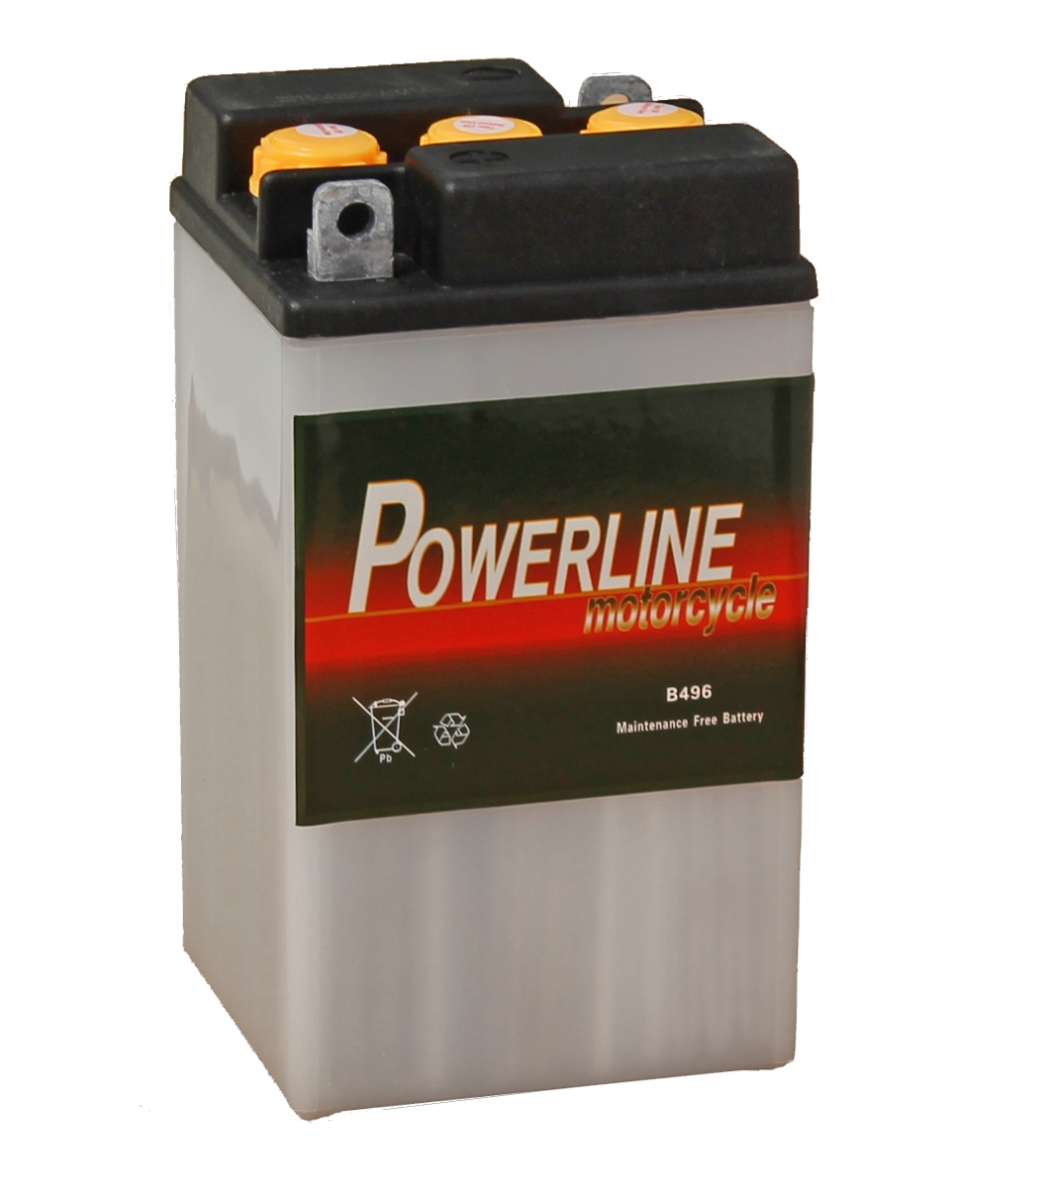 B49 6 Powerline Motorcycle Battery 6v 10ah B496